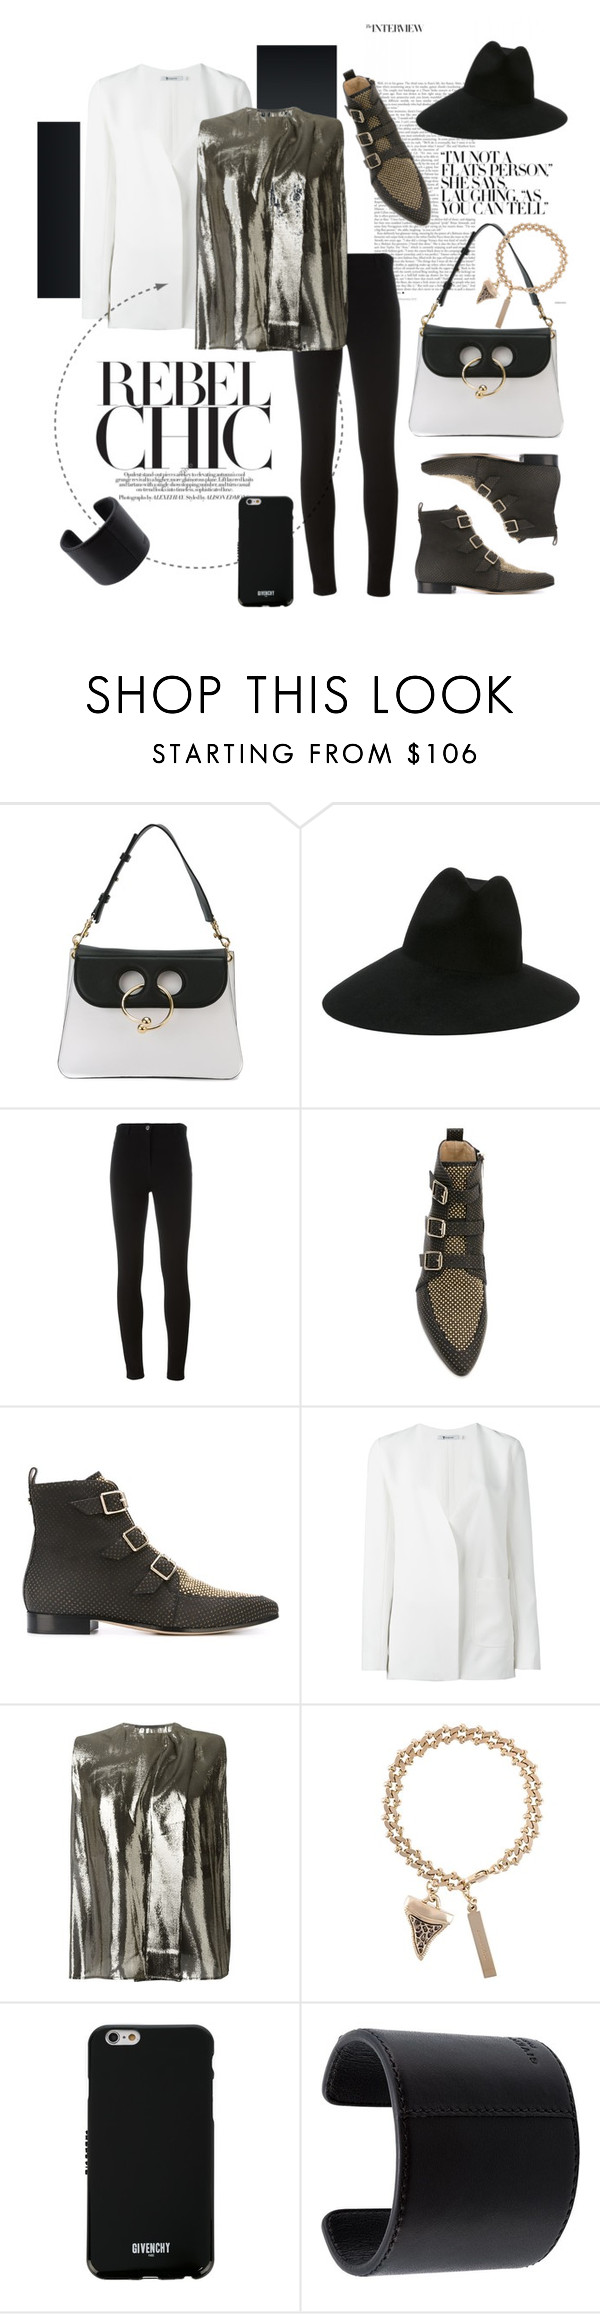 """Rebel Chic"" by tessabit ❤ liked on Polyvore featuring J.W. Anderson, Gucci, Givenchy, Jimmy Choo, T By Alexander Wang, Haider Ackermann, jimmychoo, gucci, tbyalexanderwang and jwanderson"